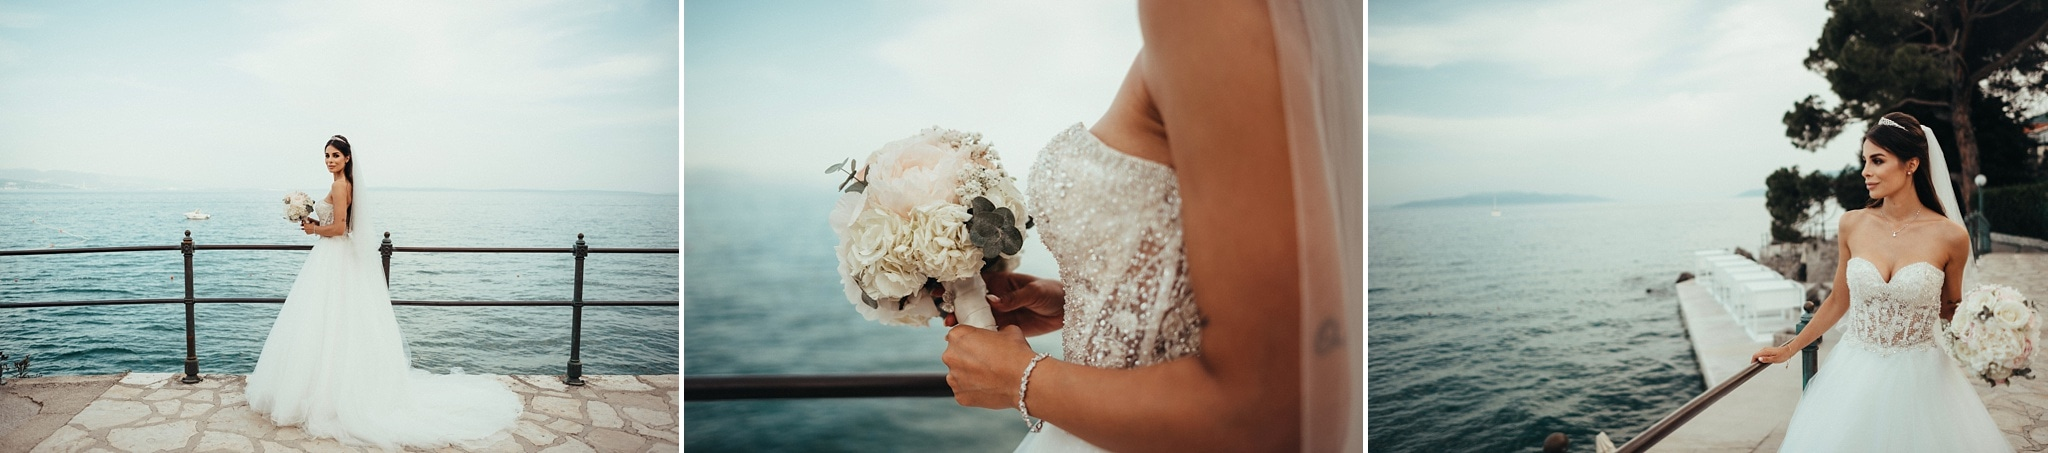 Beautiful bride in Opatija